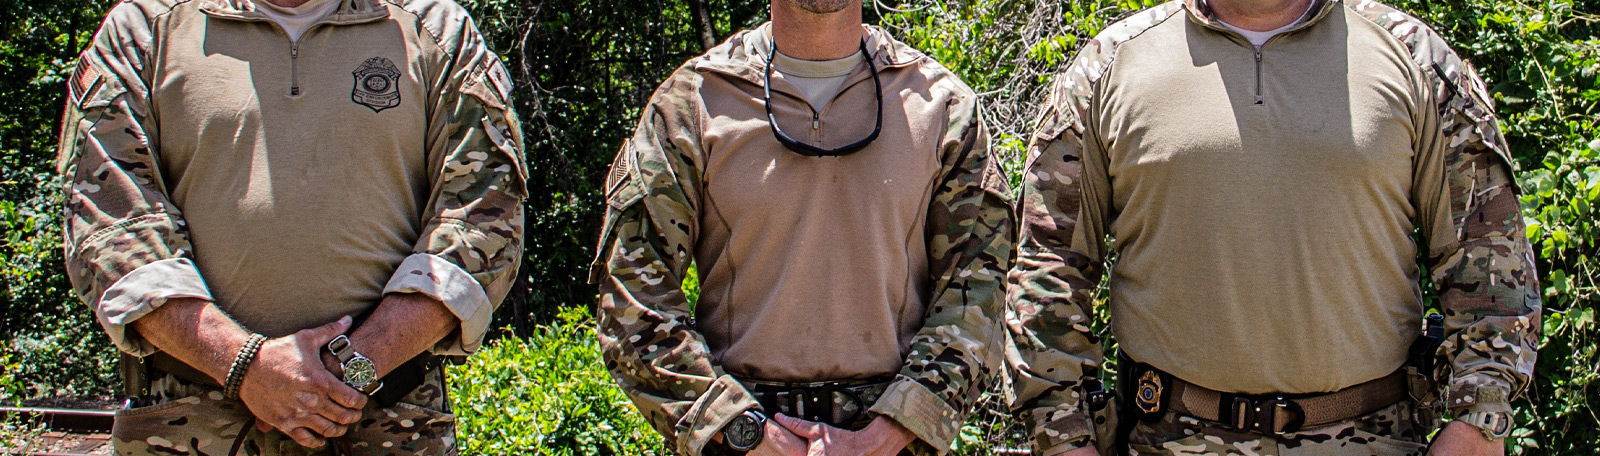 Apparel - Tactical Shirts Category